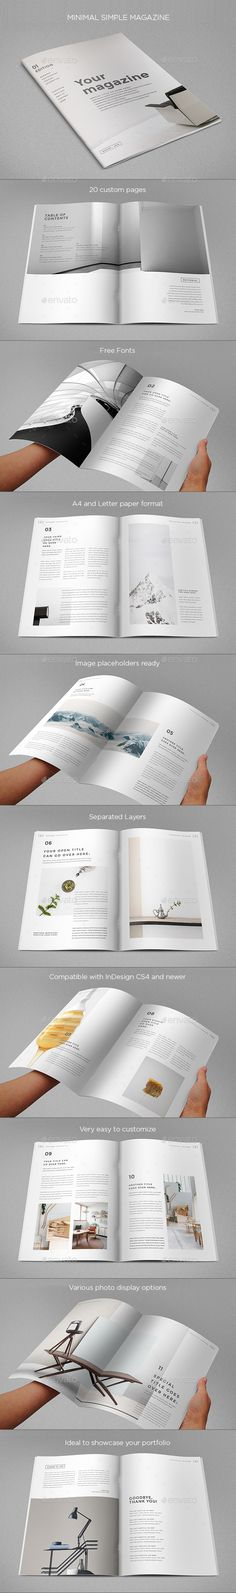 Fashion Magazine | Indesign magazine templates, Magazines and Print ...